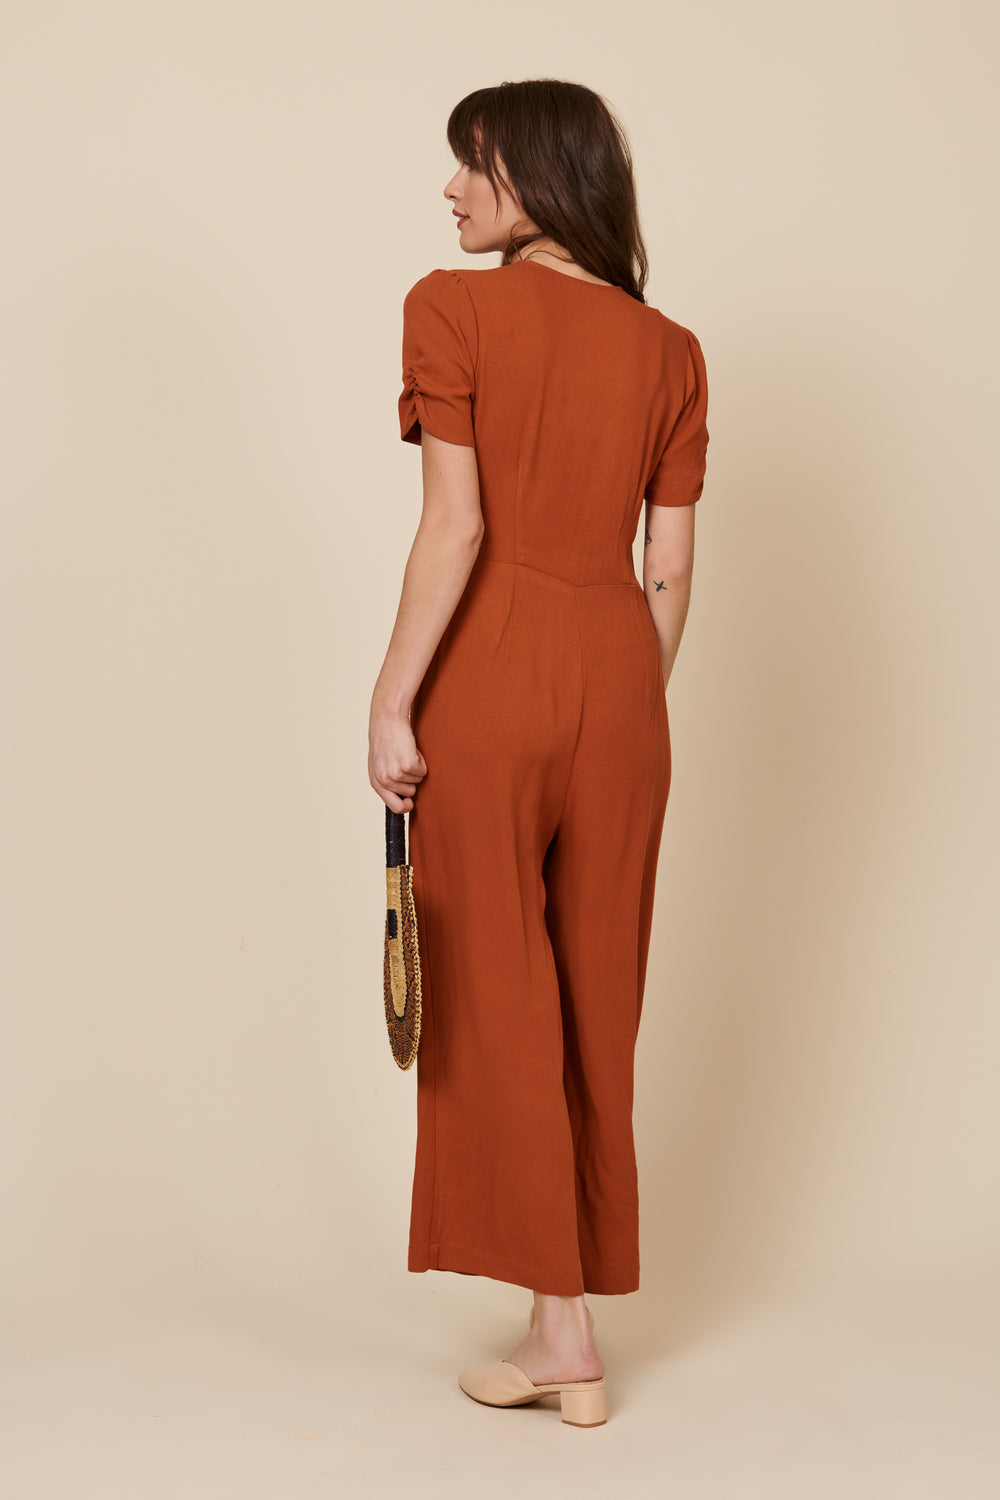 Ellie Jumpsuit in Rust - Whimsy & Row